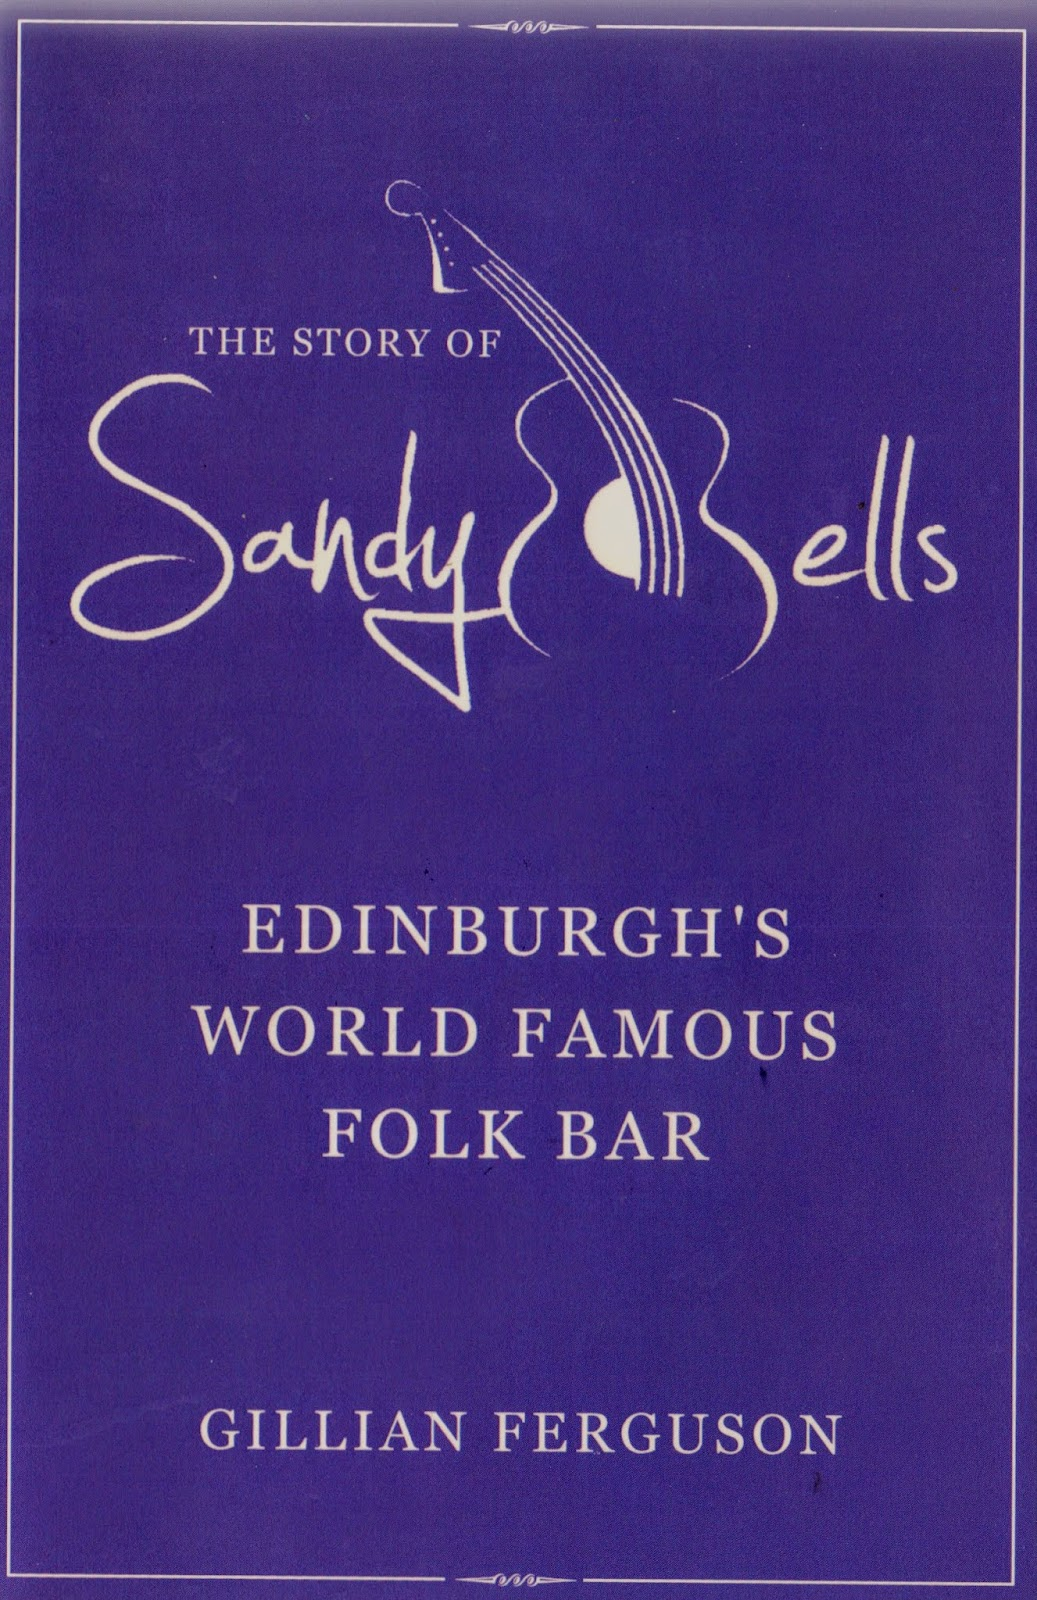 sandy bells famous folk bar edinburgh